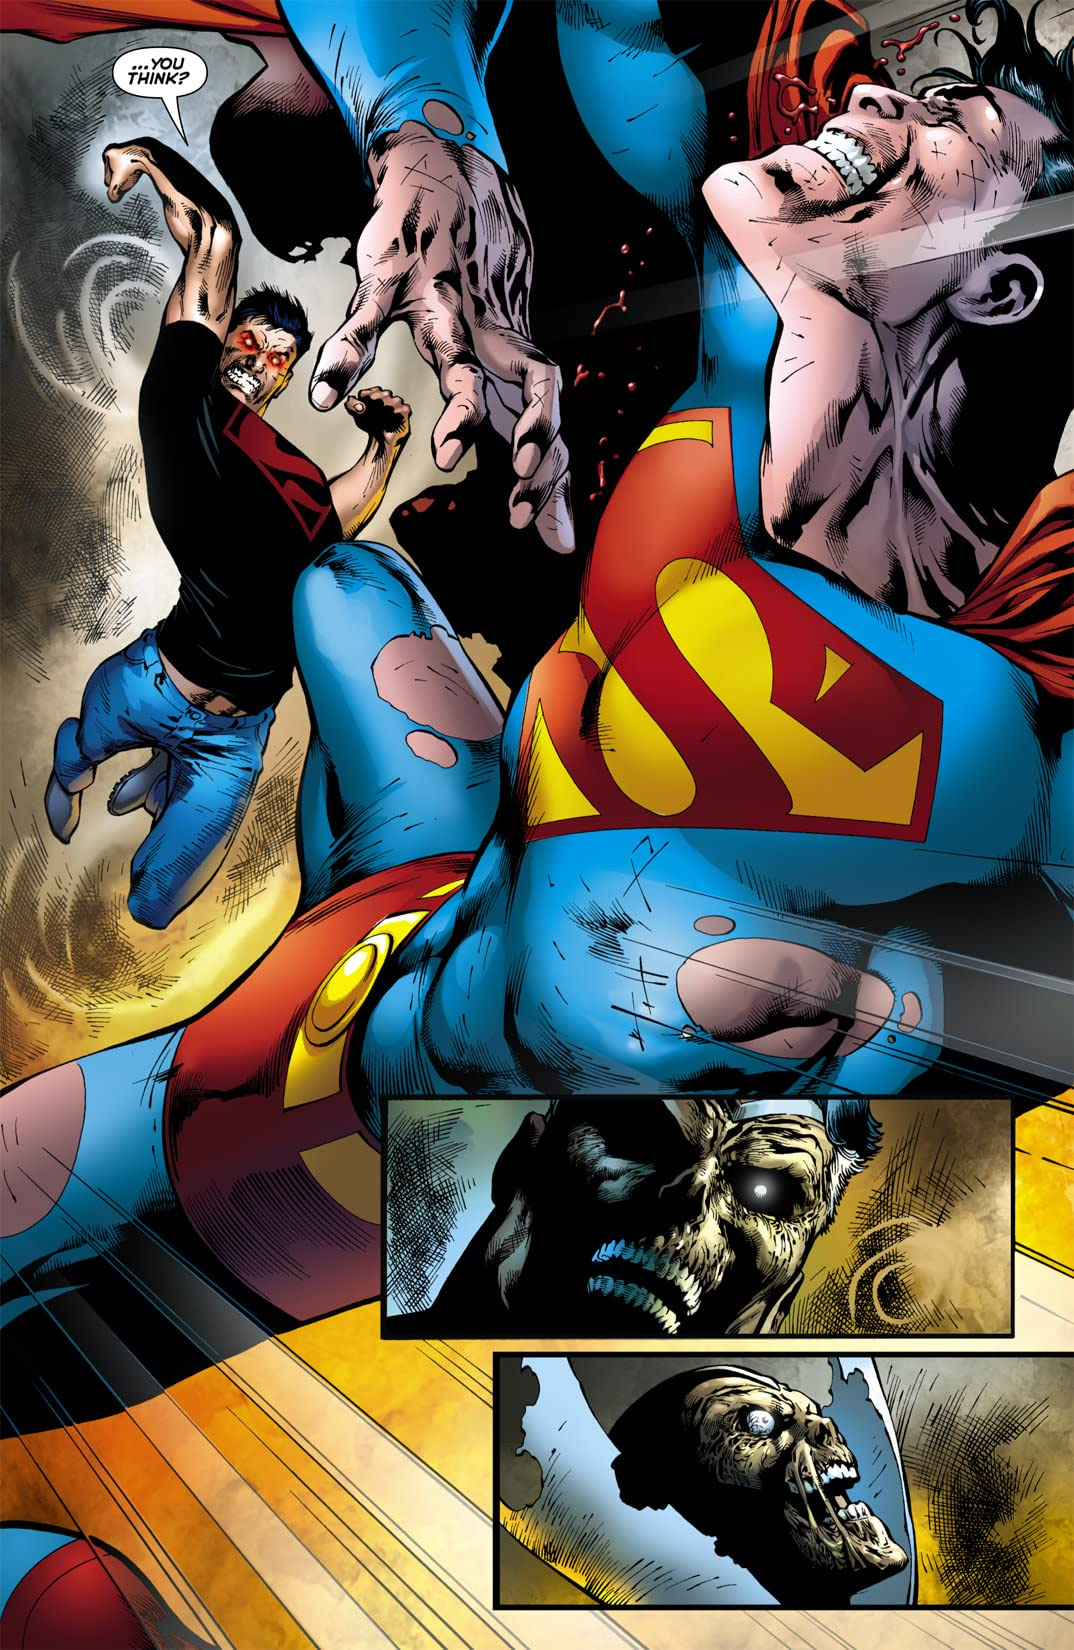 Blackest Night: Superman #2 (of 3)